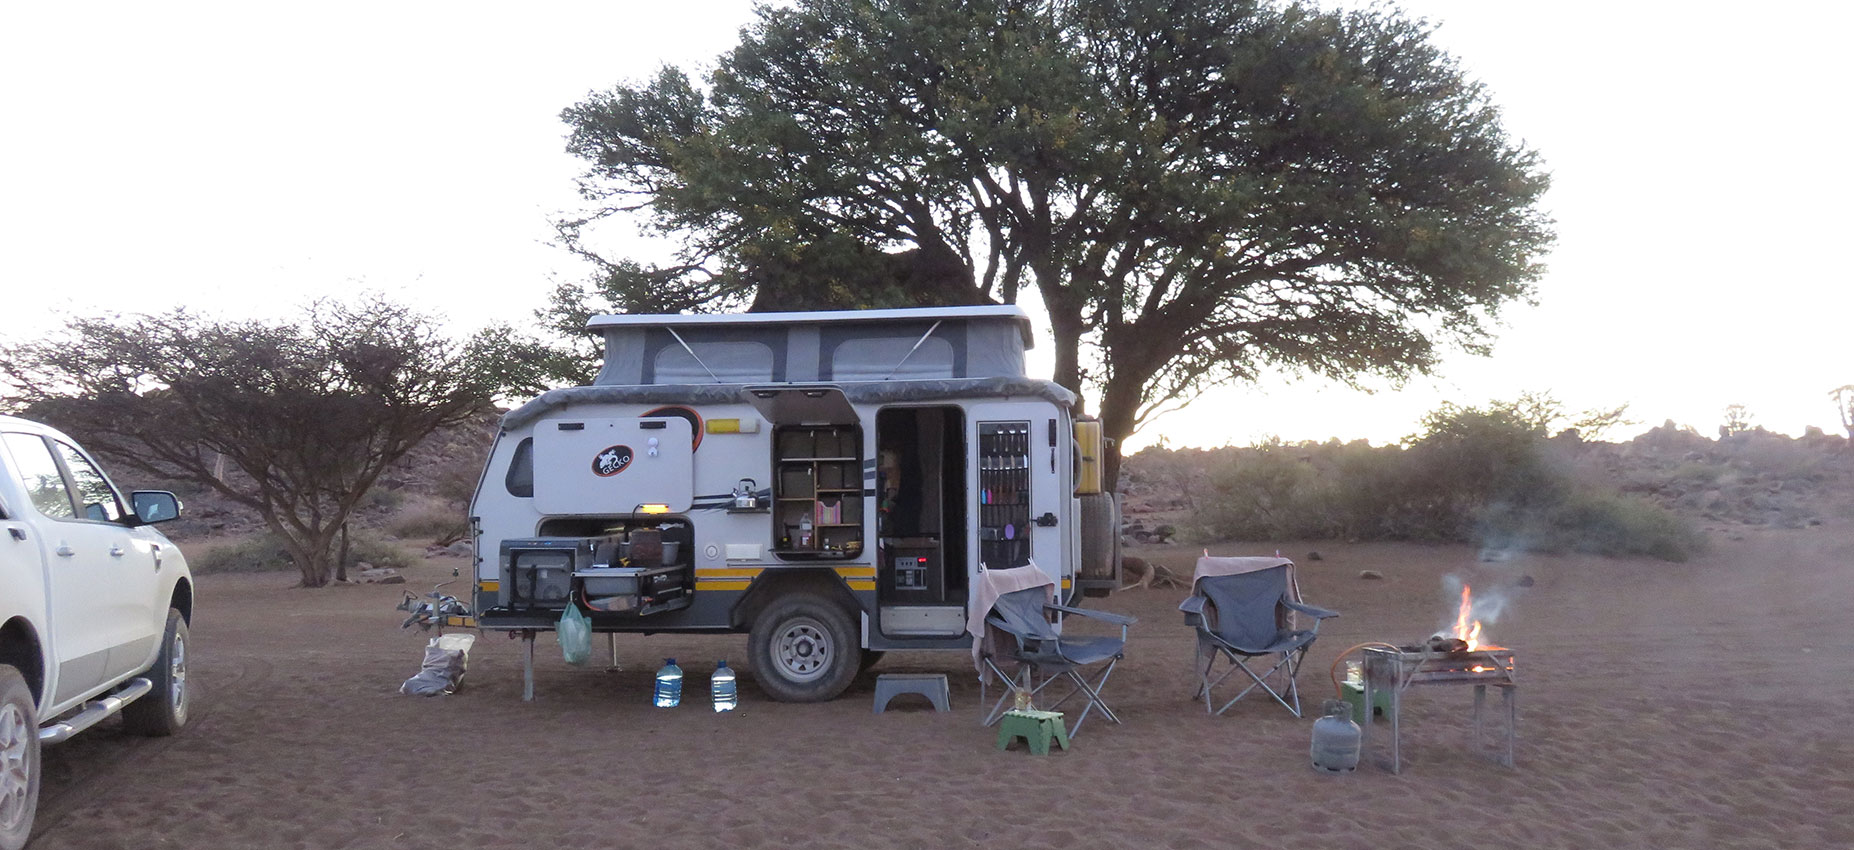 Offroad Caravan Under Tree